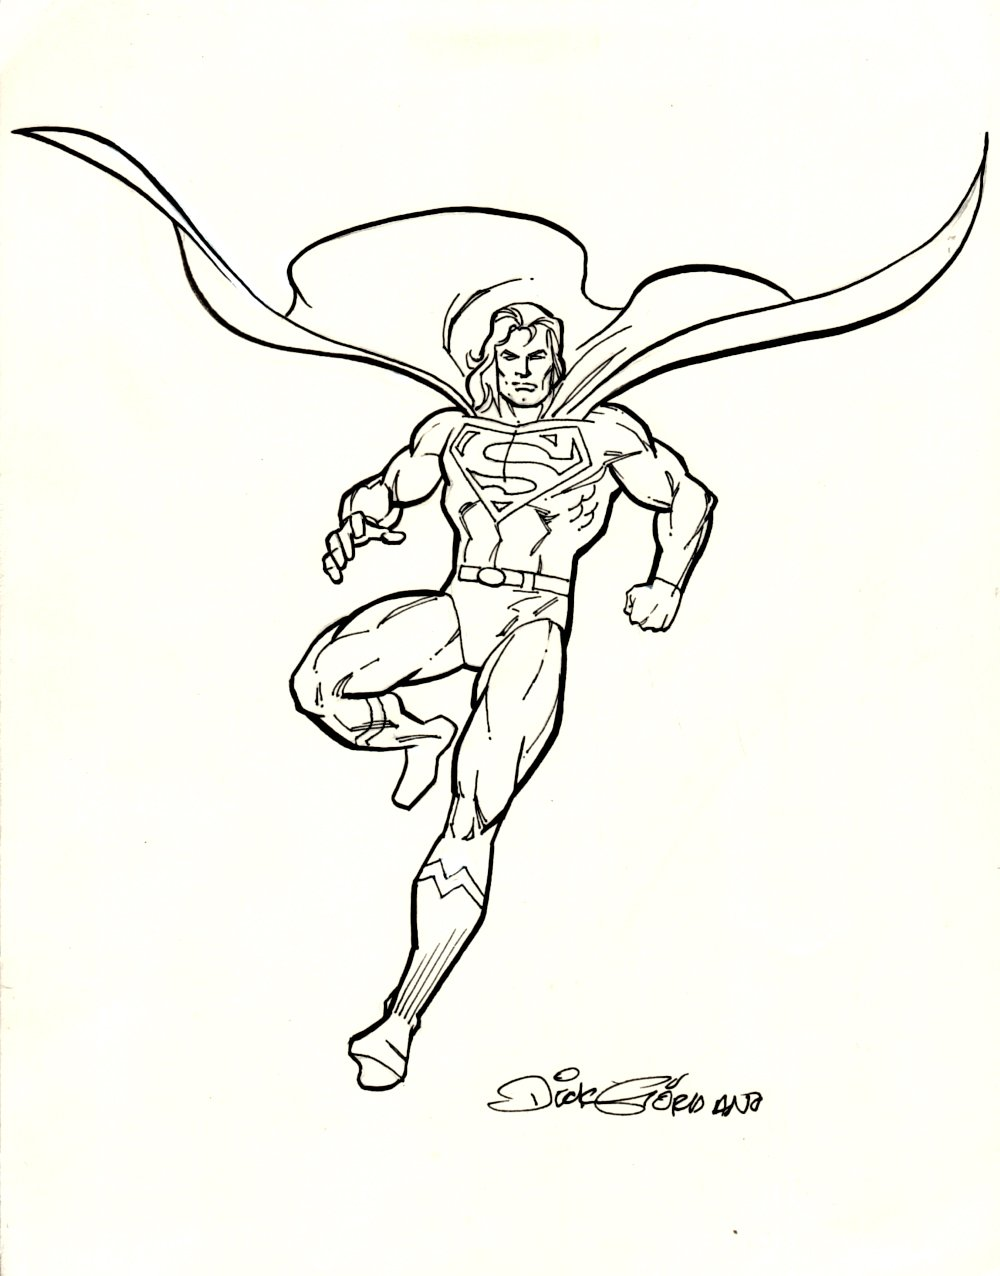 Superman T-Shirt Design(SOLD LIVE ON 'DUELING DEALERS OF COMIC ART' EPISODE #16 PODCAST ON 5-5-2021 (RE-WATCH OUR LIVE ART SELLING PODCAST HERE)